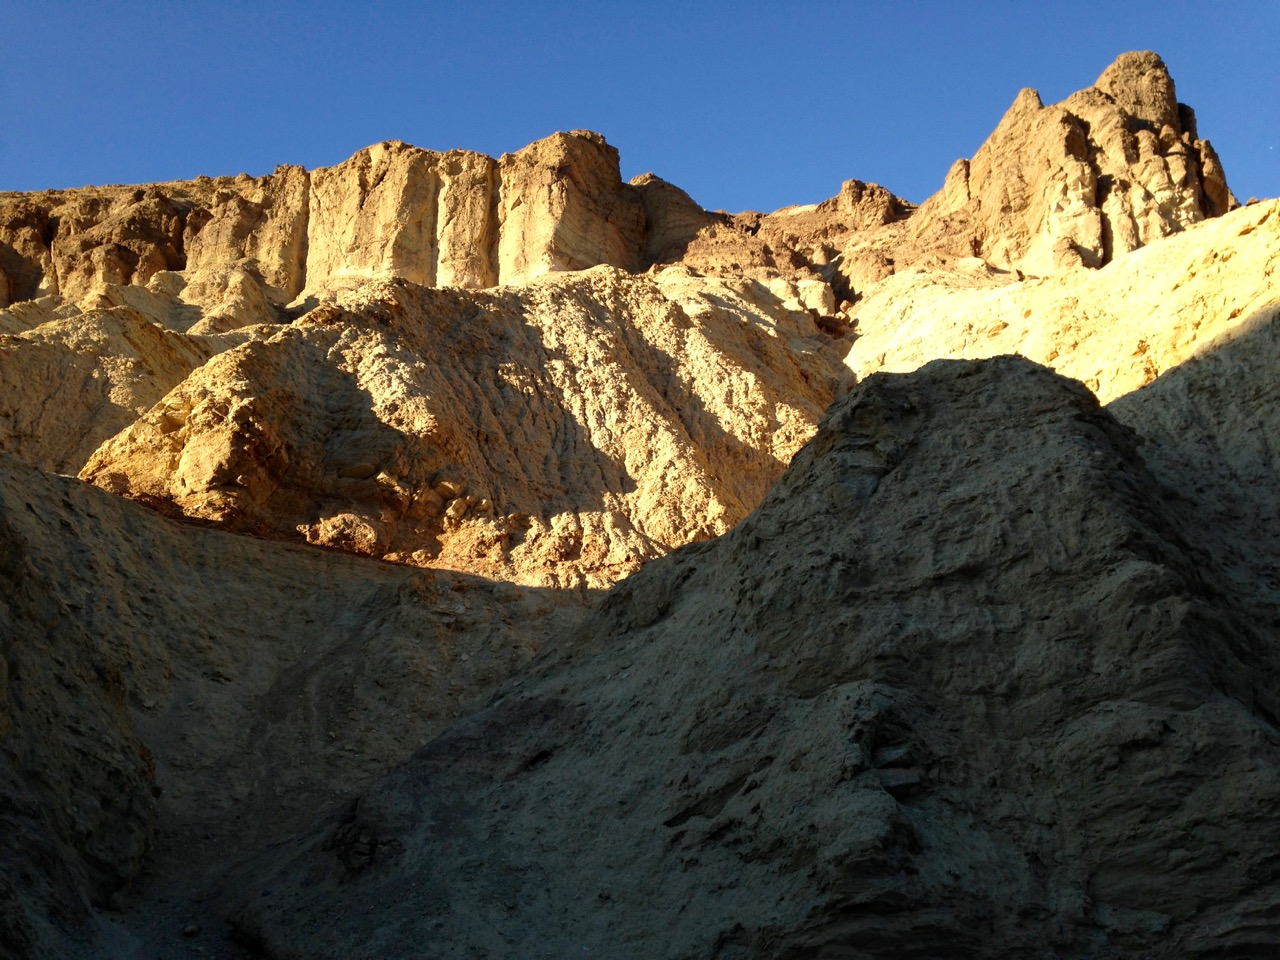 Golden Canyon – Death Valley National Park, California